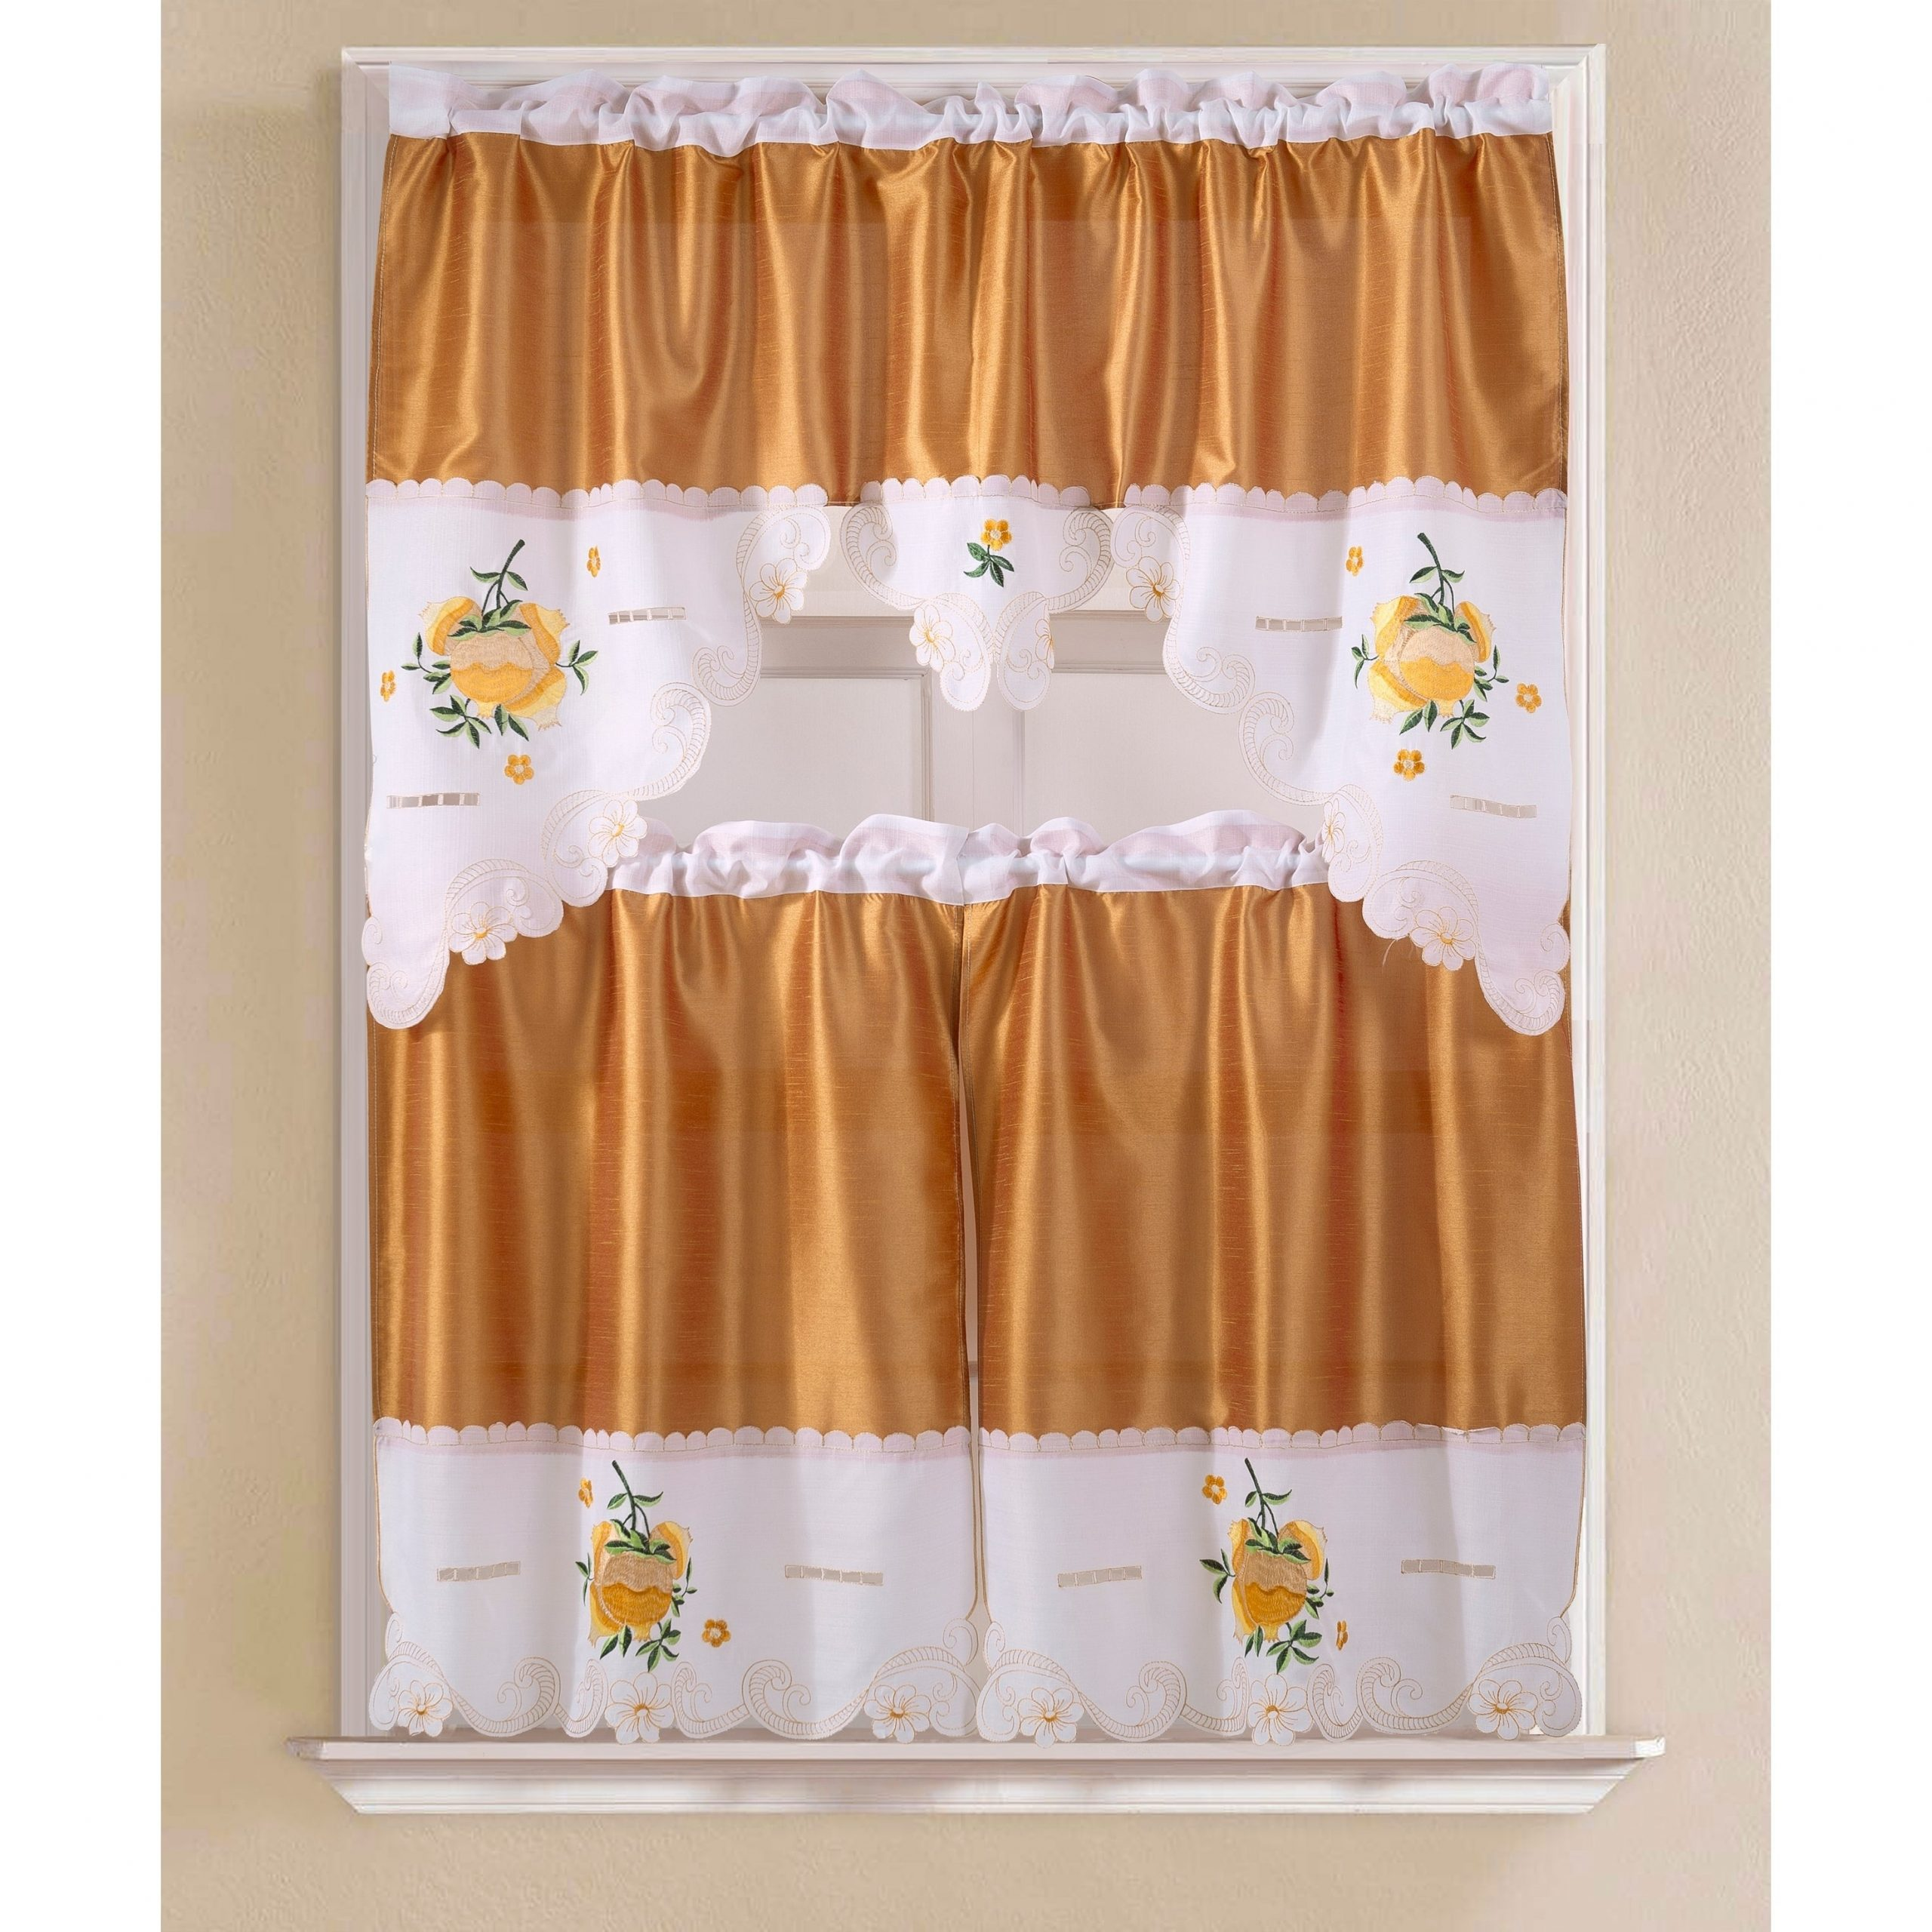 Porch & Den Eastview Faux Silk 3 Piece Kitchen Curtain Set With Chateau Wines Cottage Kitchen Curtain Tier And Valance Sets (View 16 of 20)